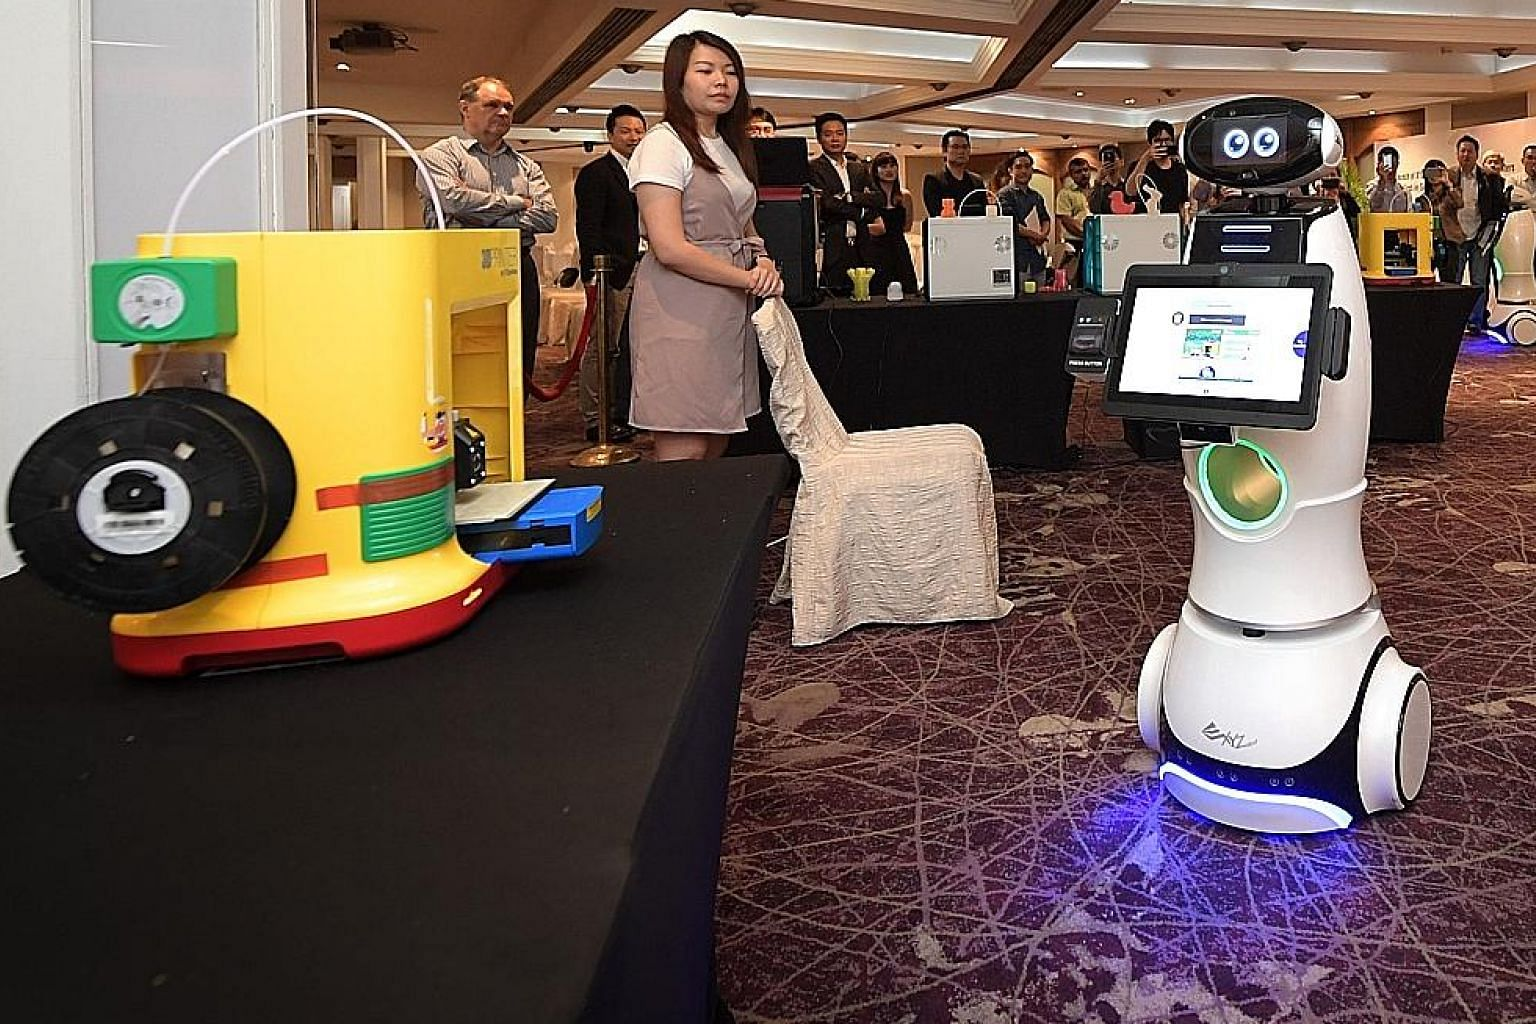 The XYZrobot showing visitors what it can do at Marina Mandarin Hotel yesterday. The retail robot was launched along with 3D desktop printers by Newstead Technologies.